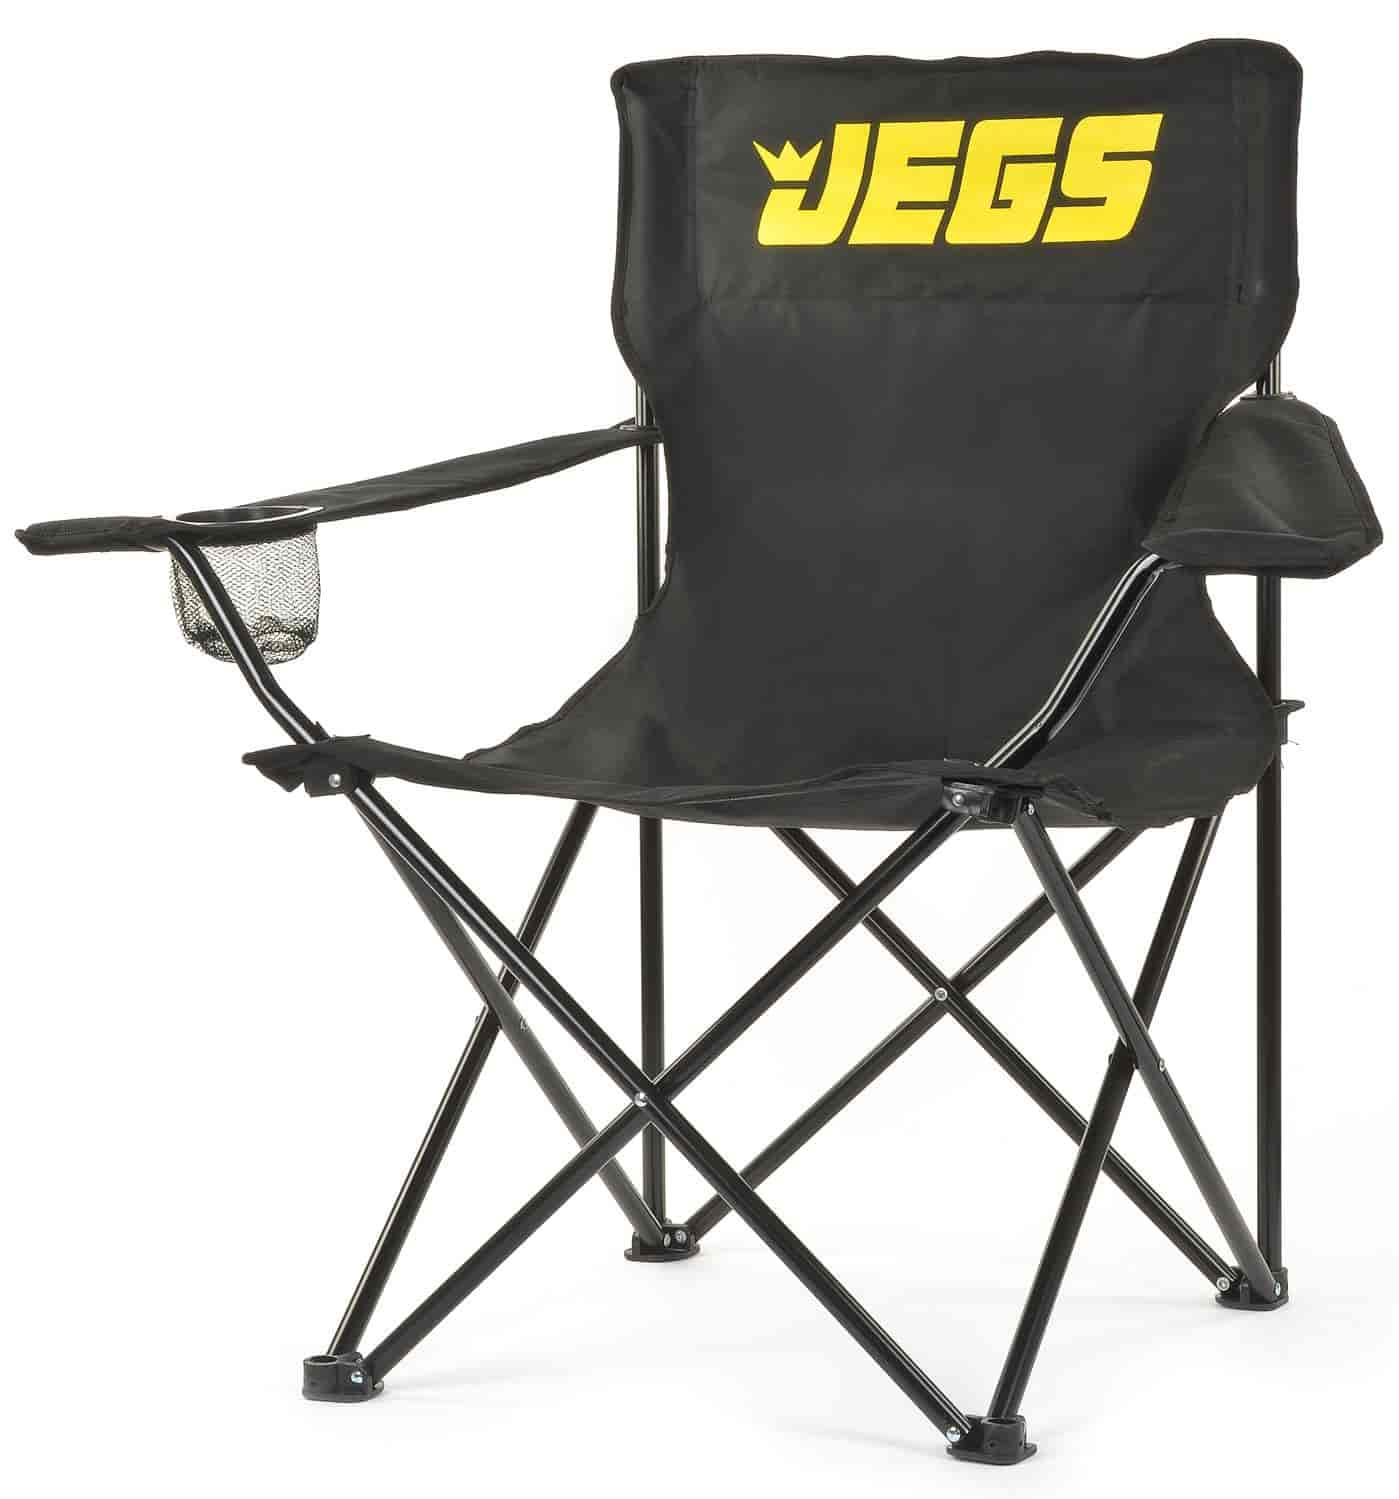 JEGS Performance Products 2000 - JEGS Folding Chairs